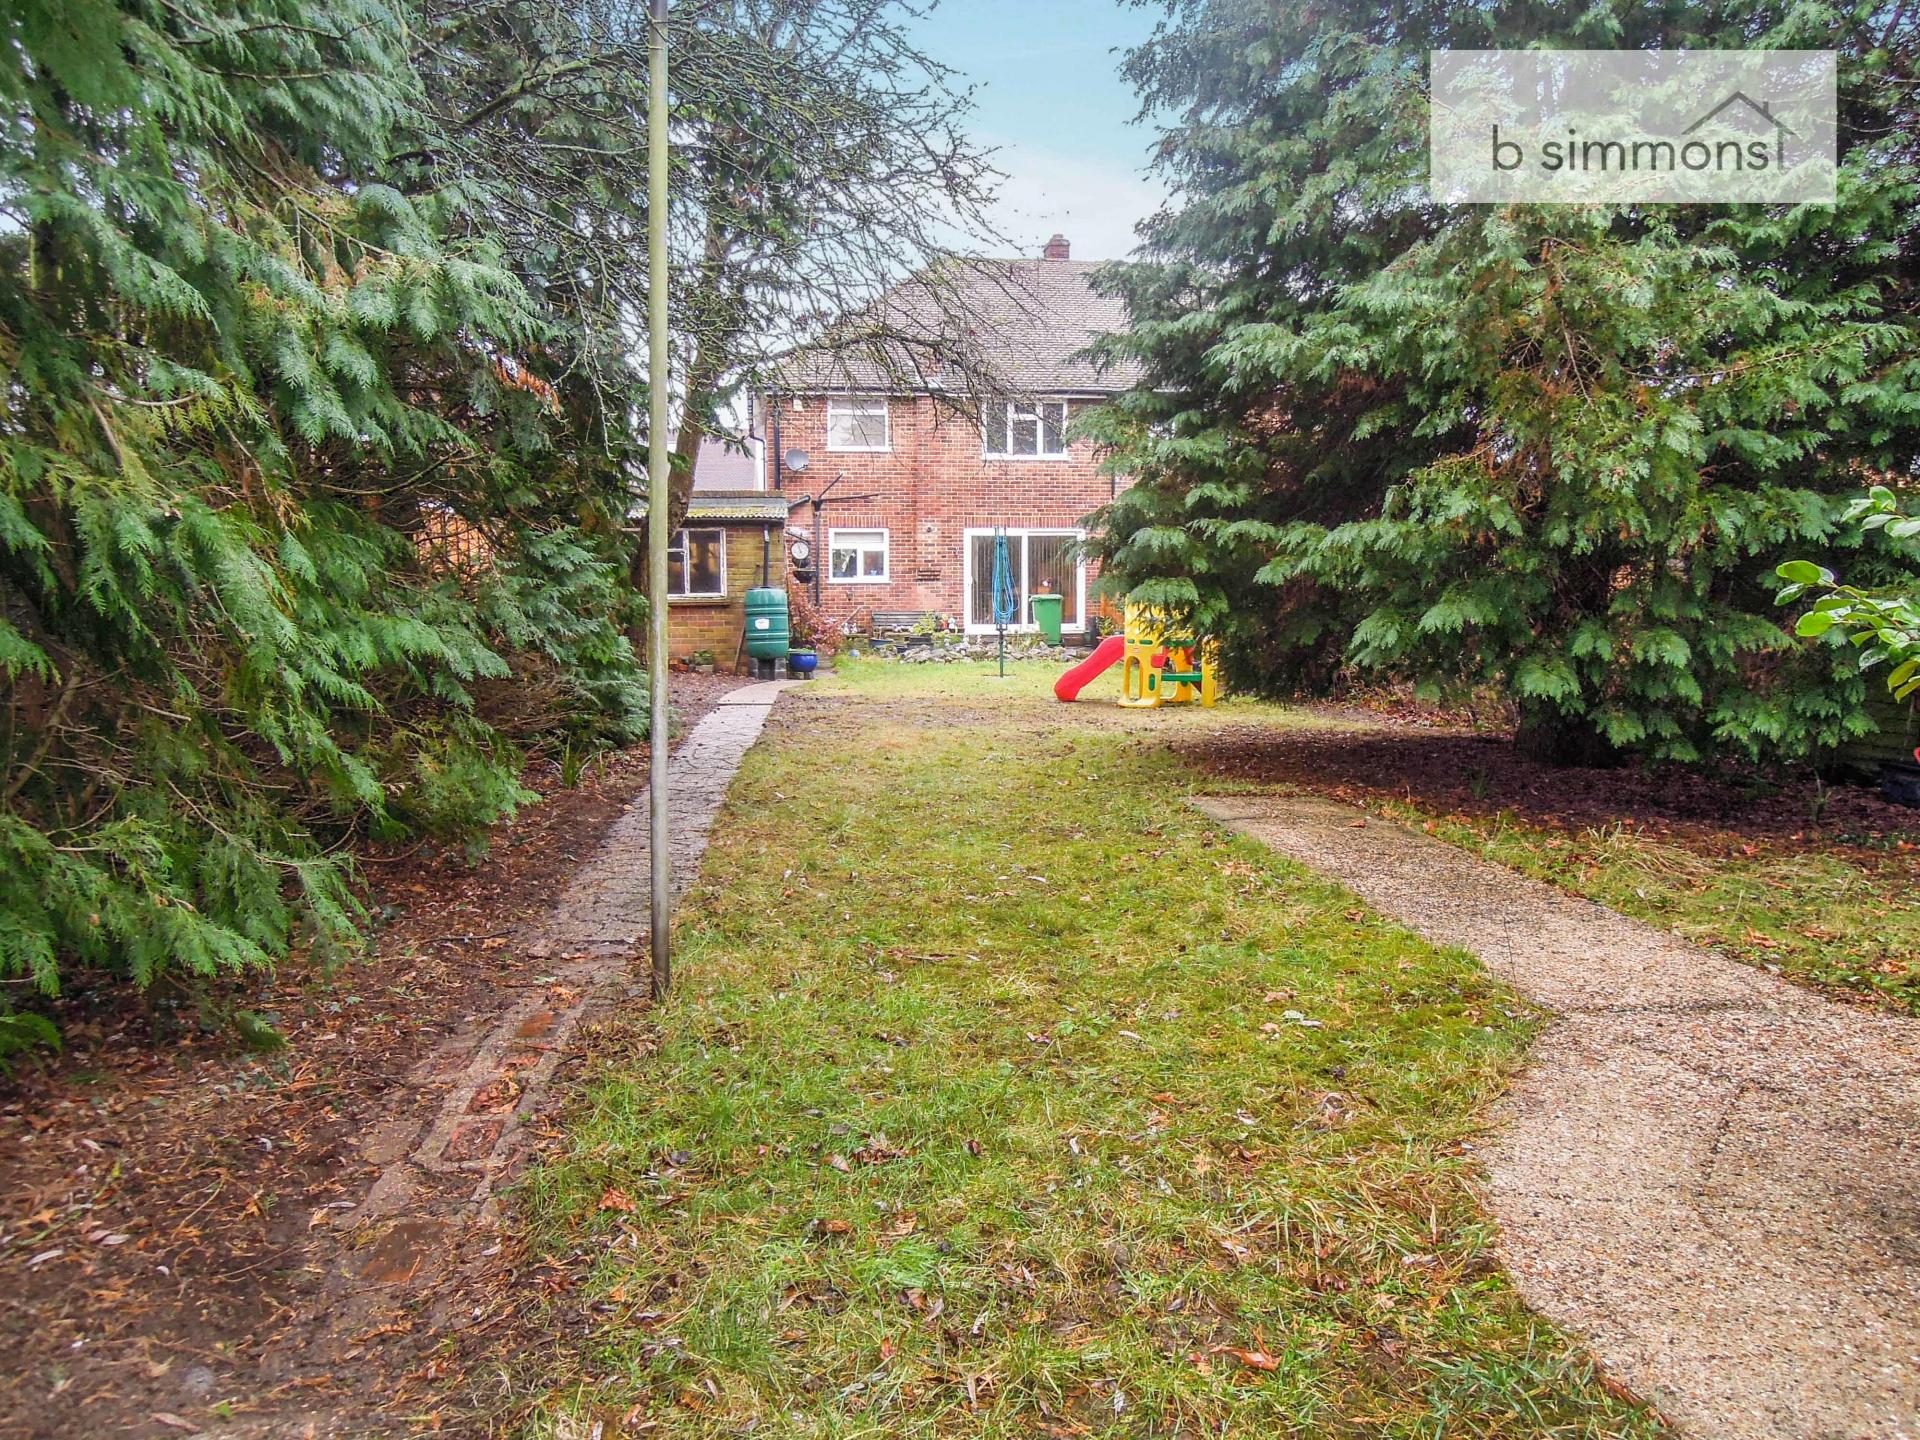 3 Bedroom House For Sale In Slough